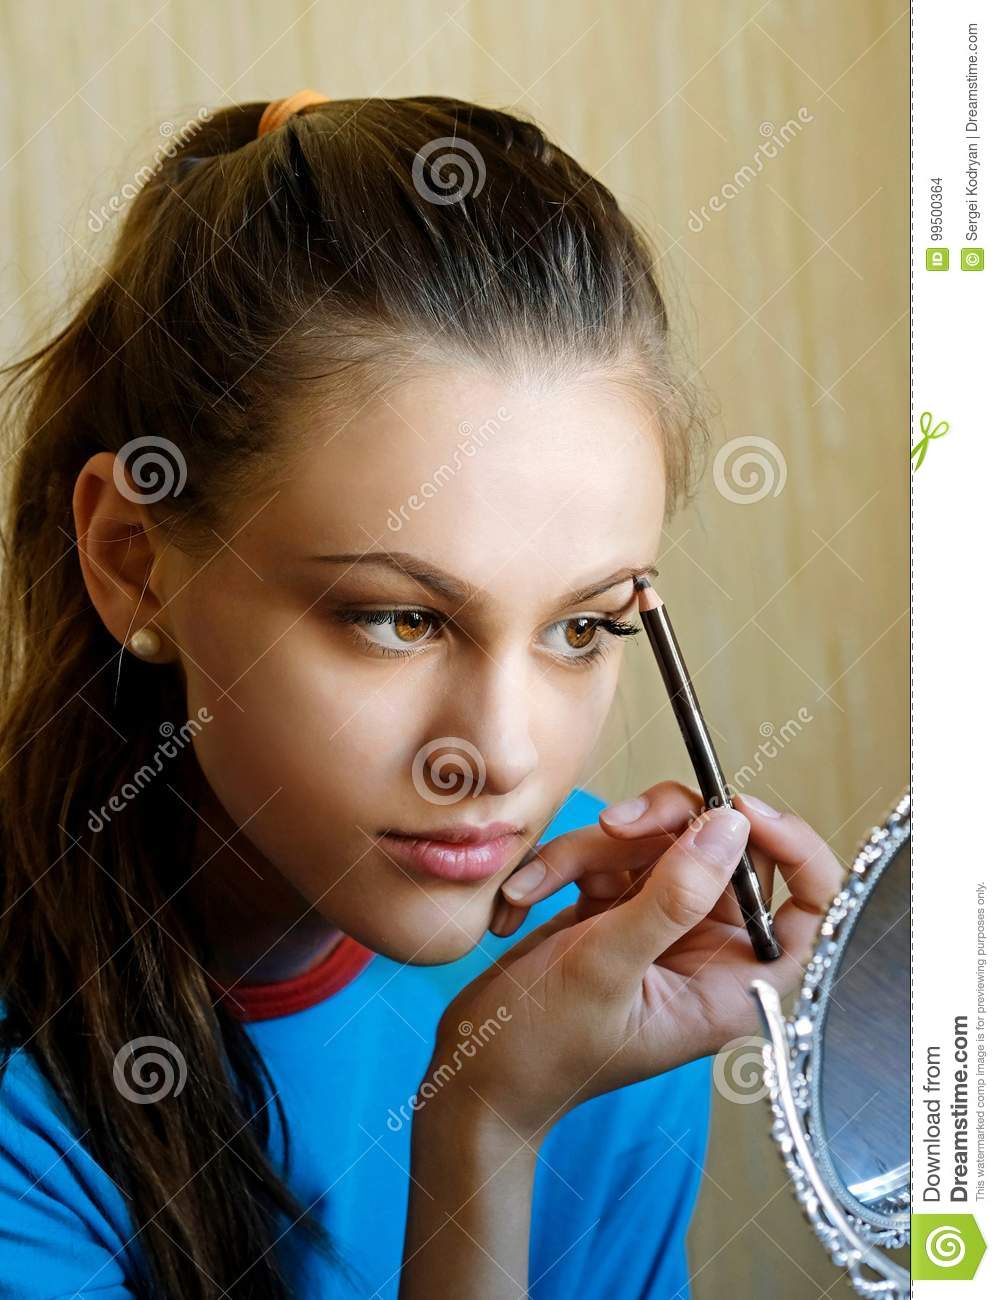 The Girl Paints Her Eyebrows Stock Photo Image Of Draws Fashion